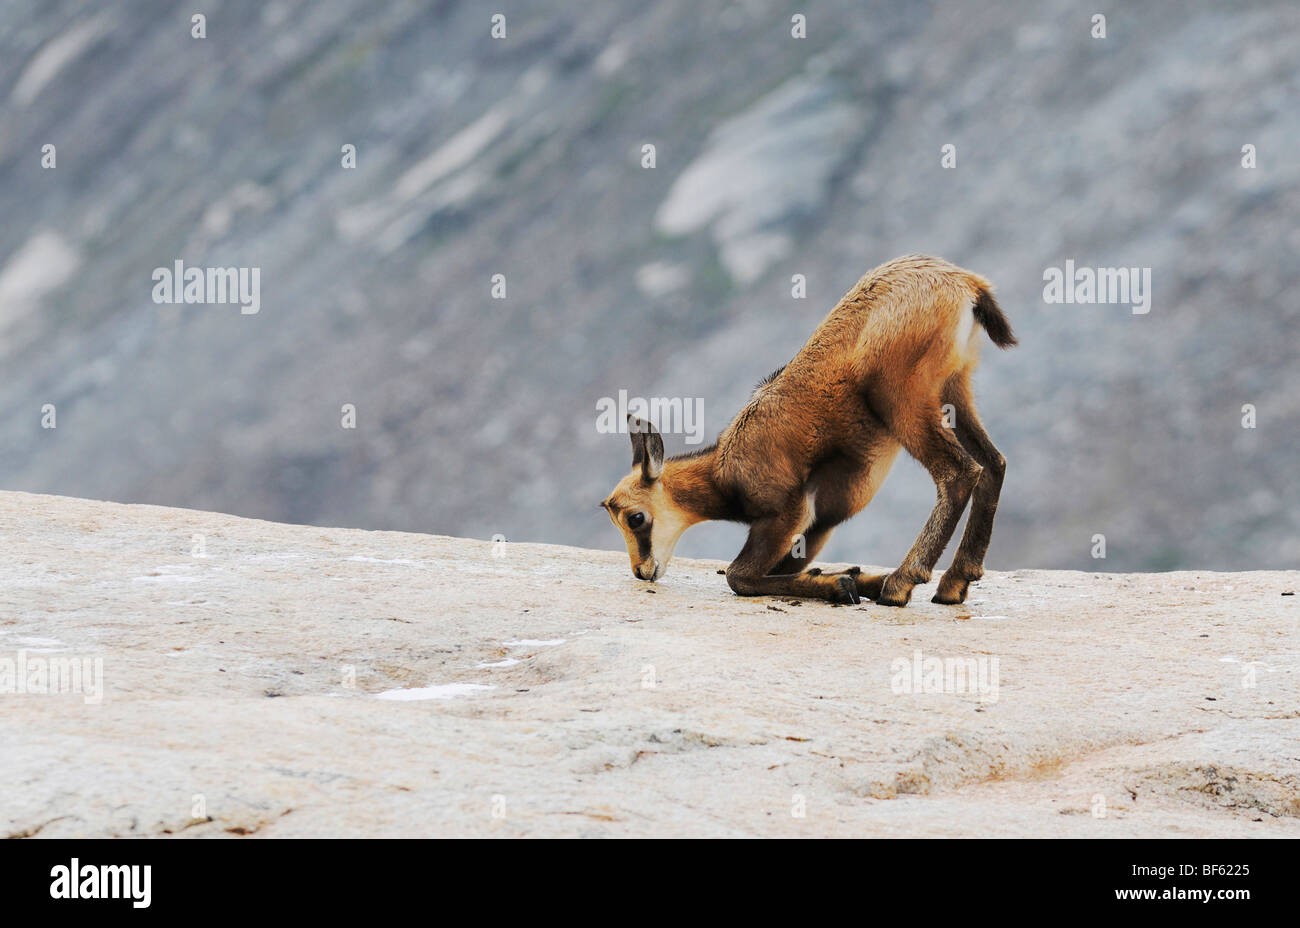 Chamois (Rupicapra rupicapra), young licking minerals, Grimsel, Bern, Switzerland, Europe - Stock Image